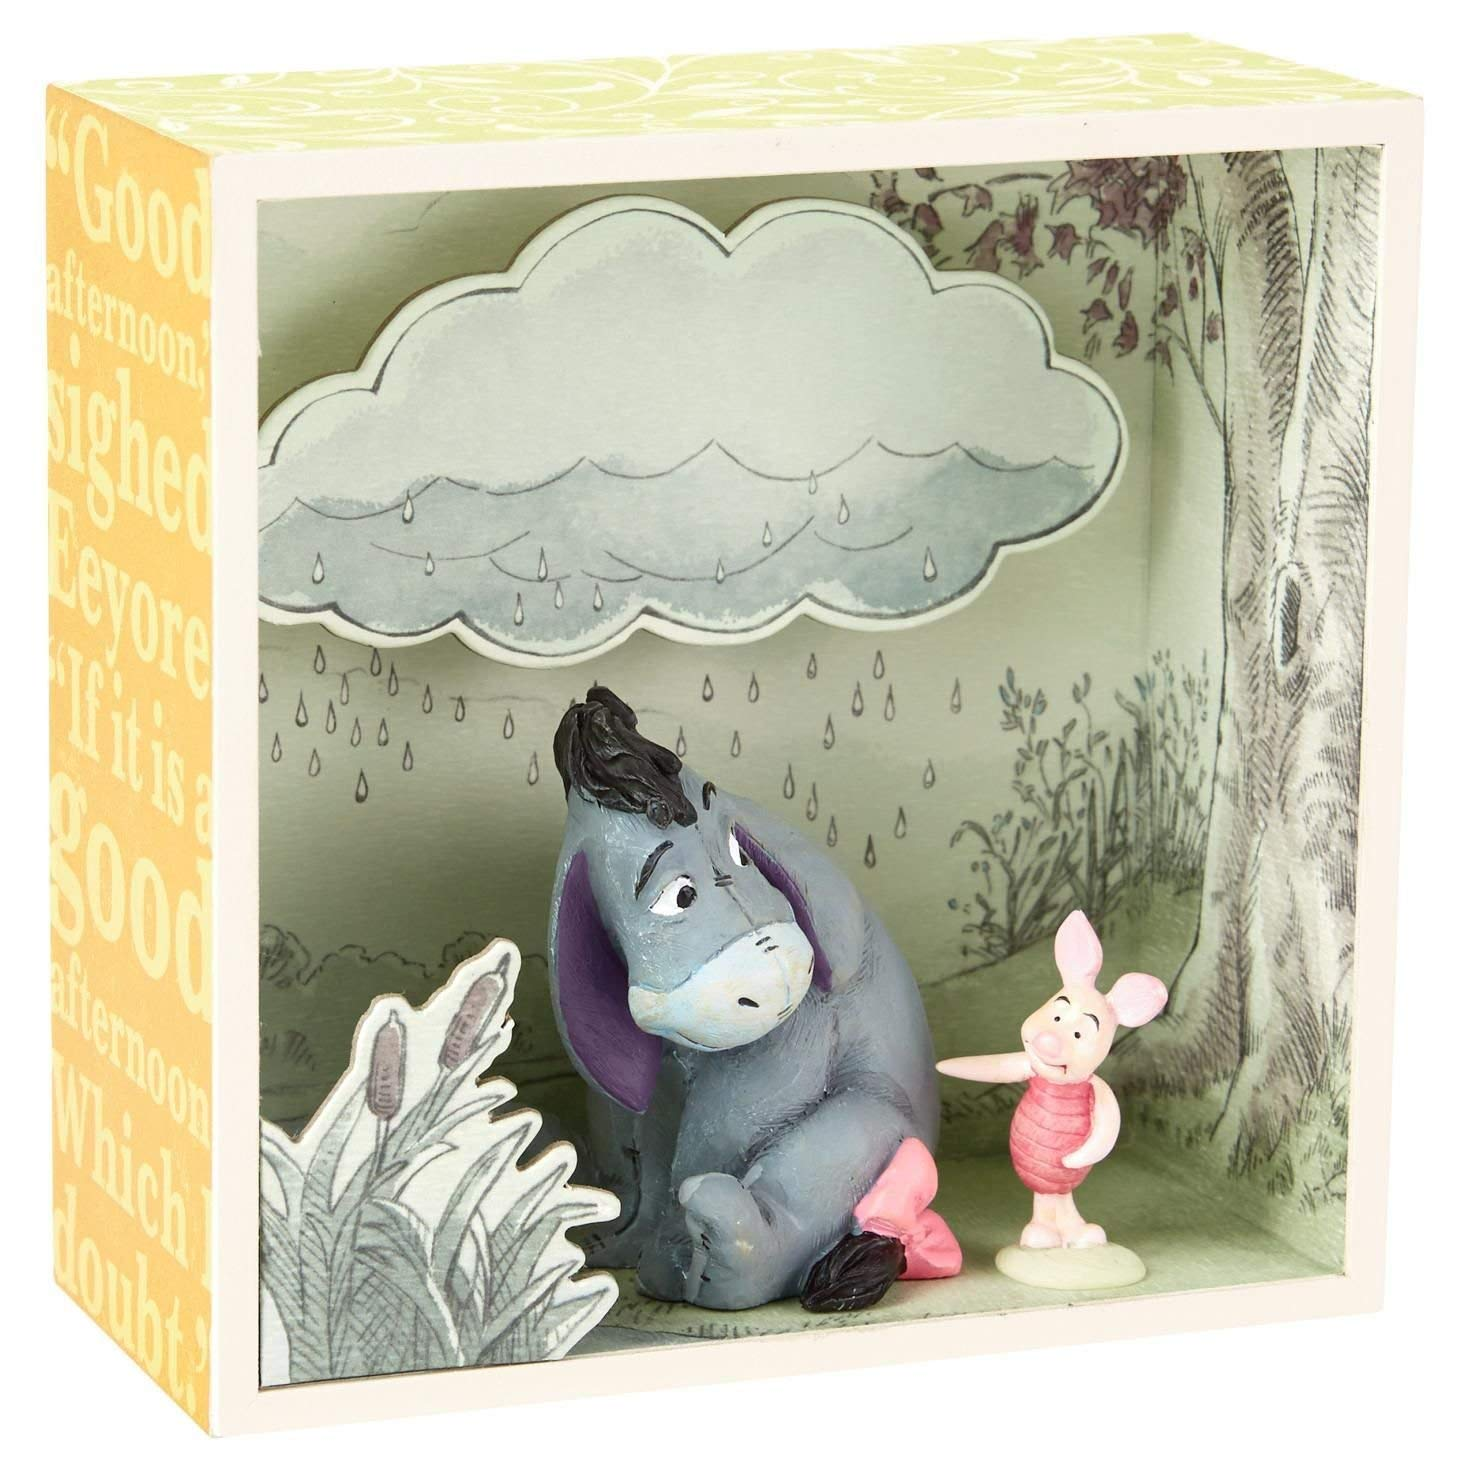 Hallmark Eyeores Cloudy Afternoon Shadow Box by Hallmark